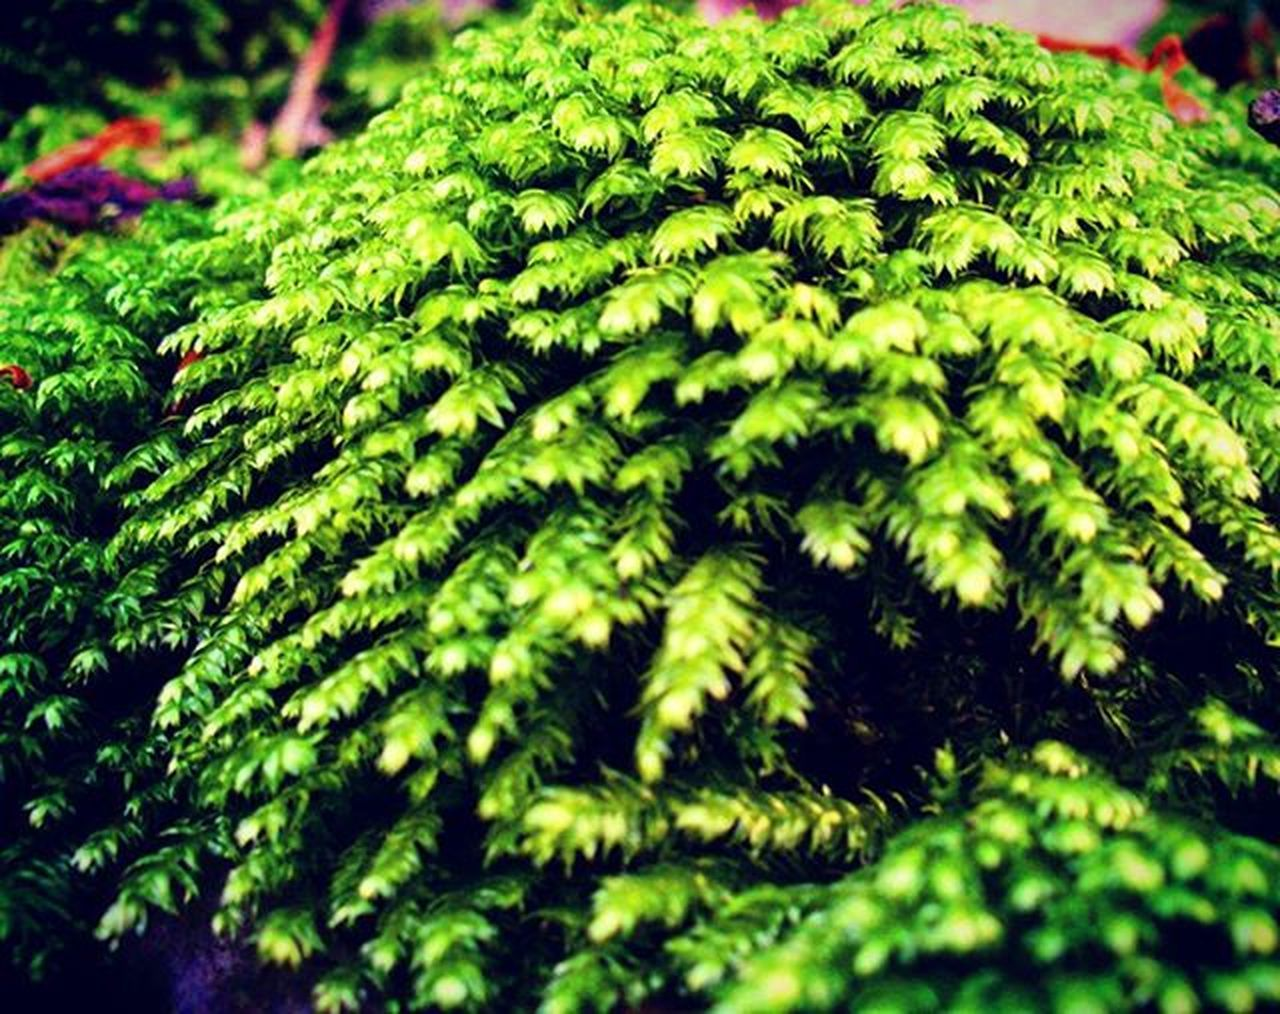 green, green color, nature, fern, growth, leaf, day, close-up, no people, beauty in nature, freshness, outdoors